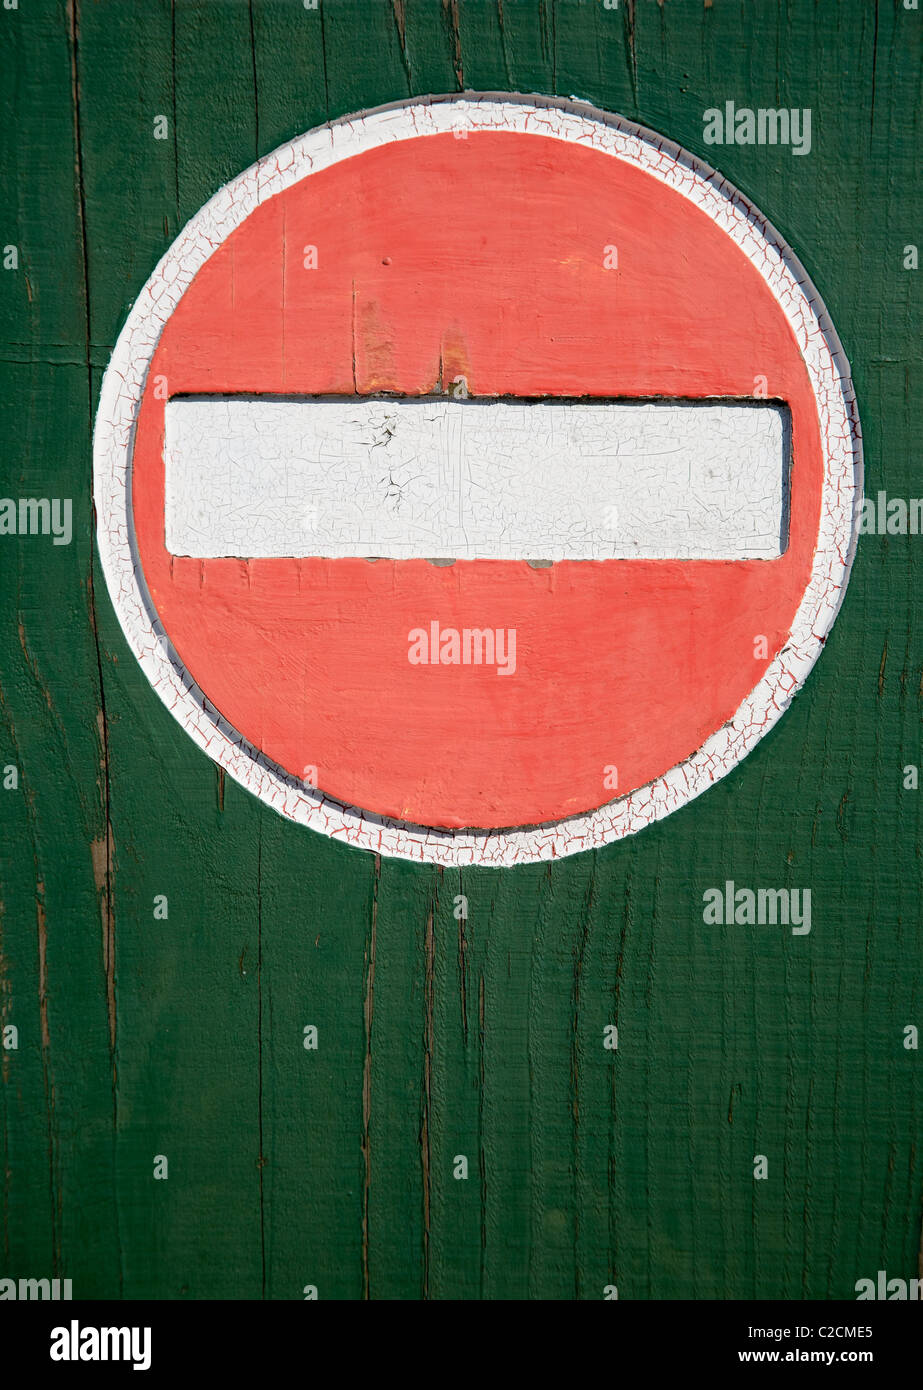 No entry sign made of wood on a green back ground - Stock Image